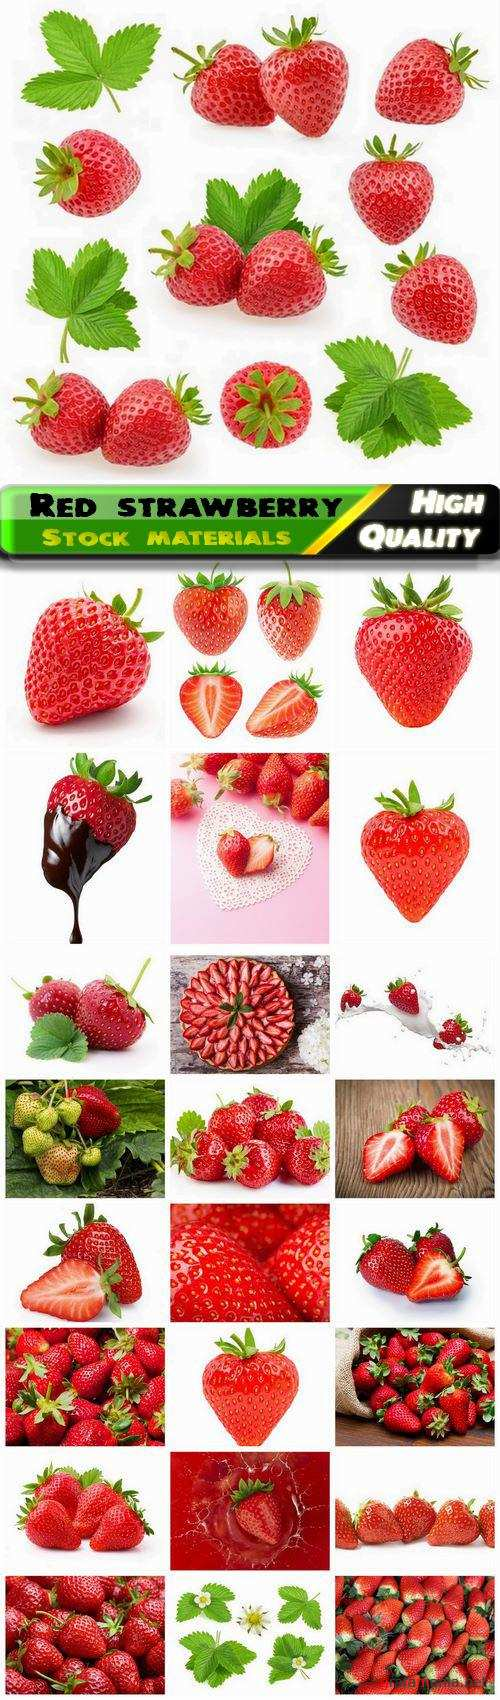 Red ripe strawberry healthy food and fruits with vitamins 25 HQ Jpg